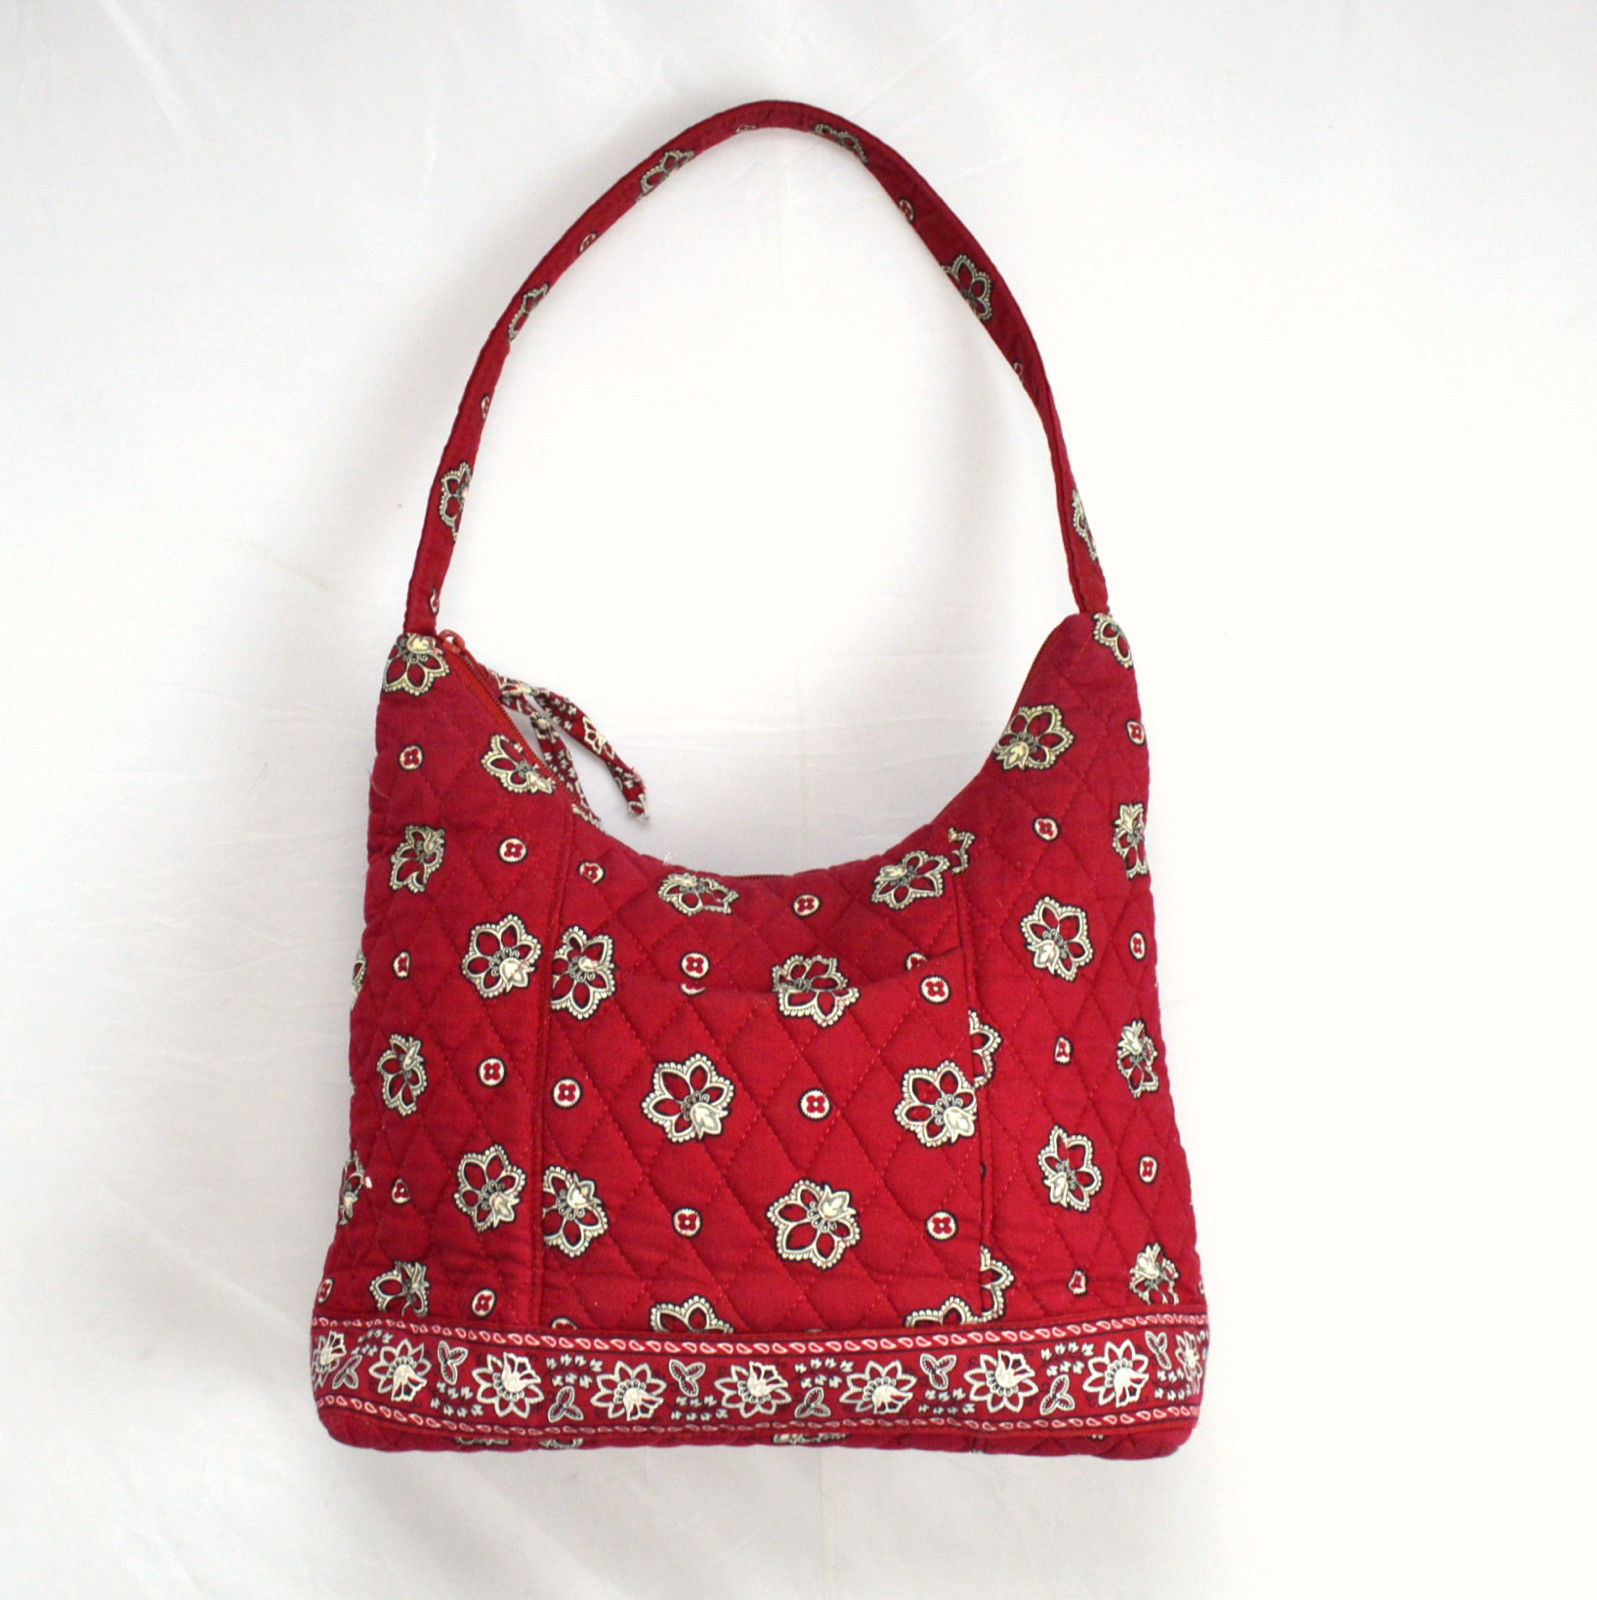 Retired Red Bandana Quilted Cotton Floral Vera Bradley